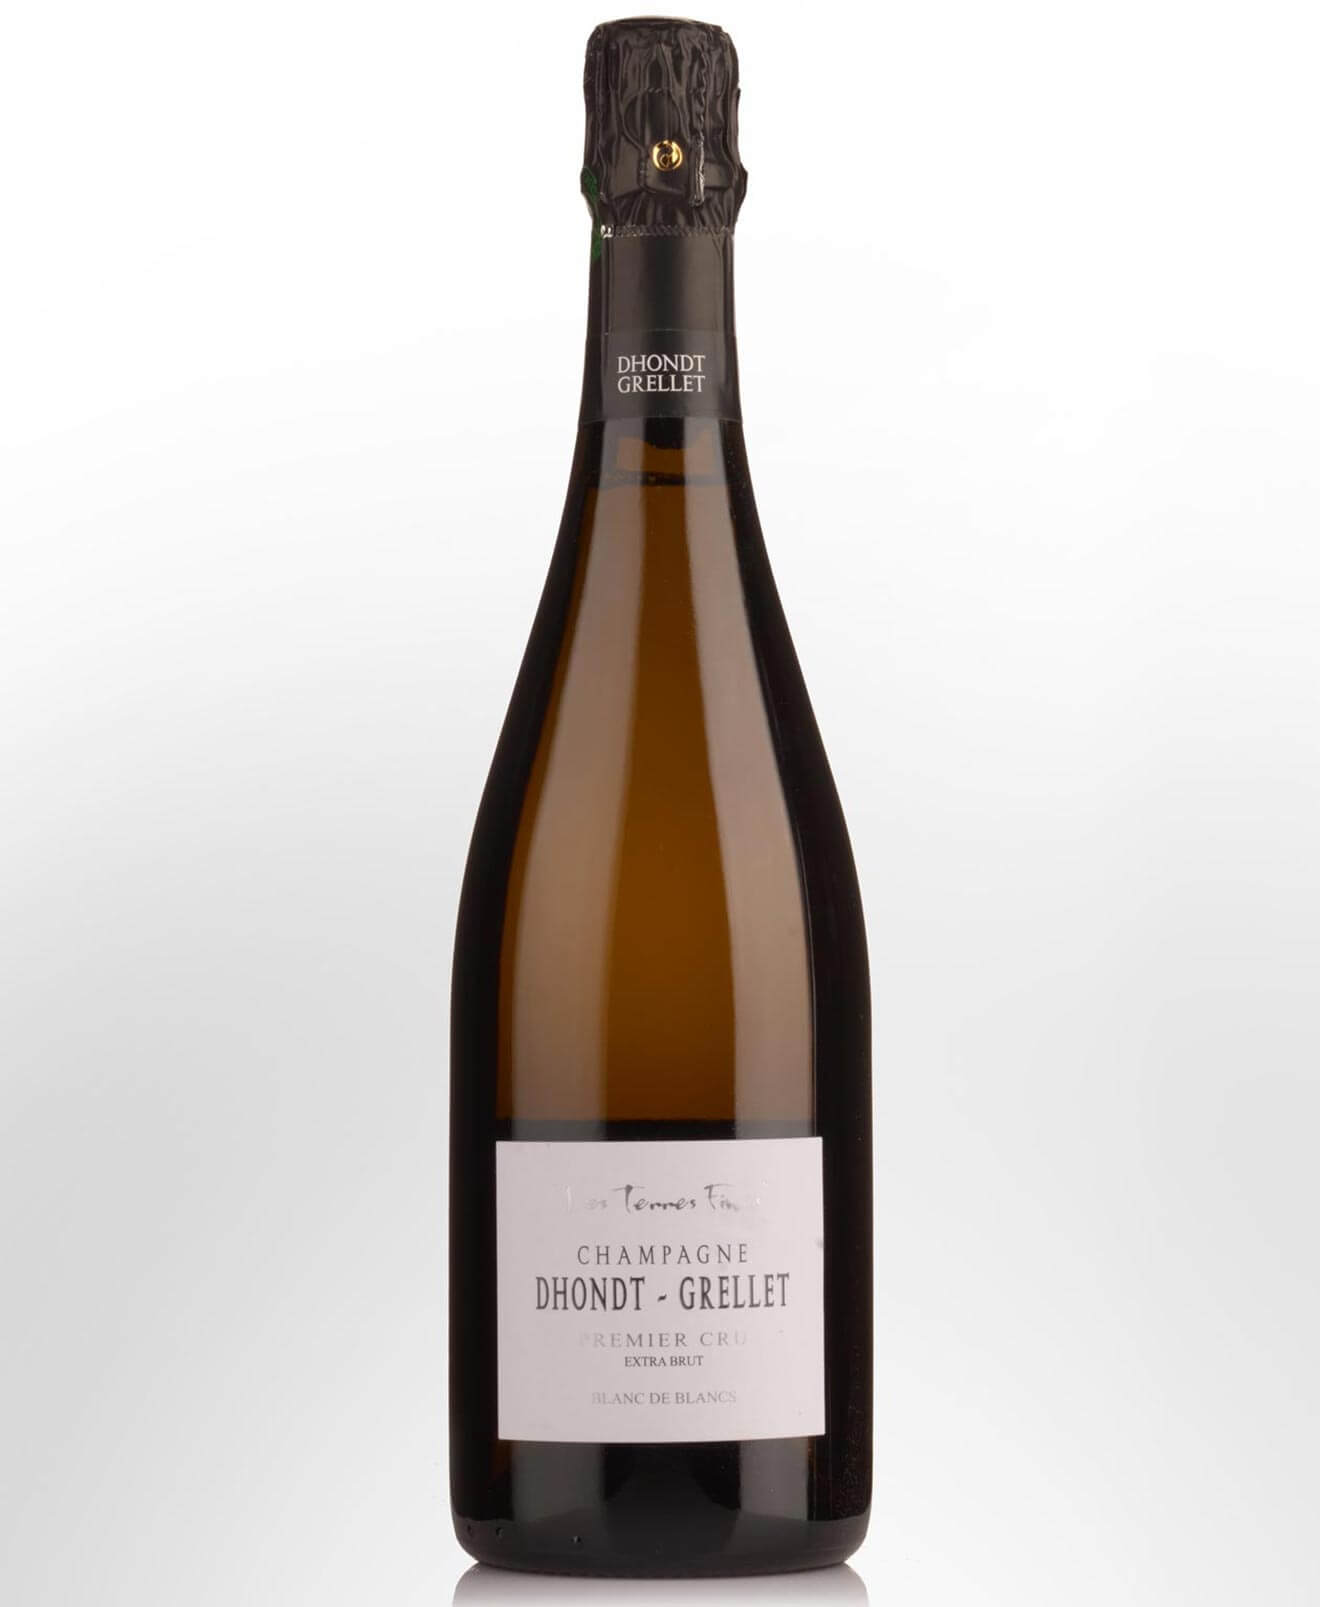 Dhondt Grellet Grand Cru Blanc de Blancs Non-Vintage, bottle on light background